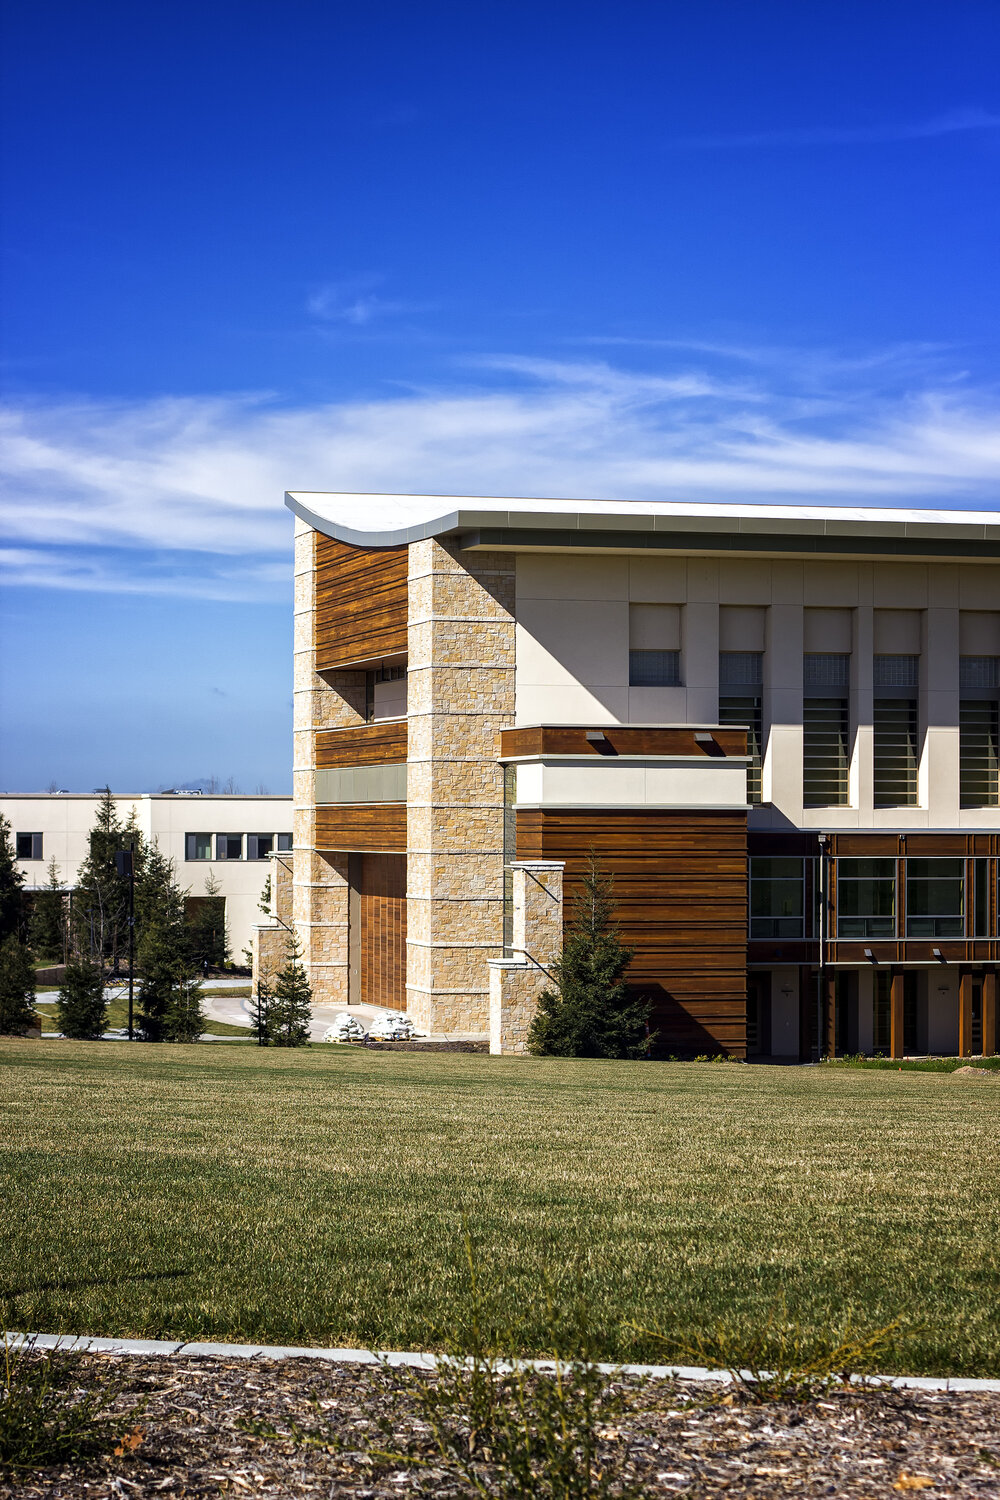 A view of the exterior of the Green Music Center on a sunny day with green grass in the foreground and blue skies in the background